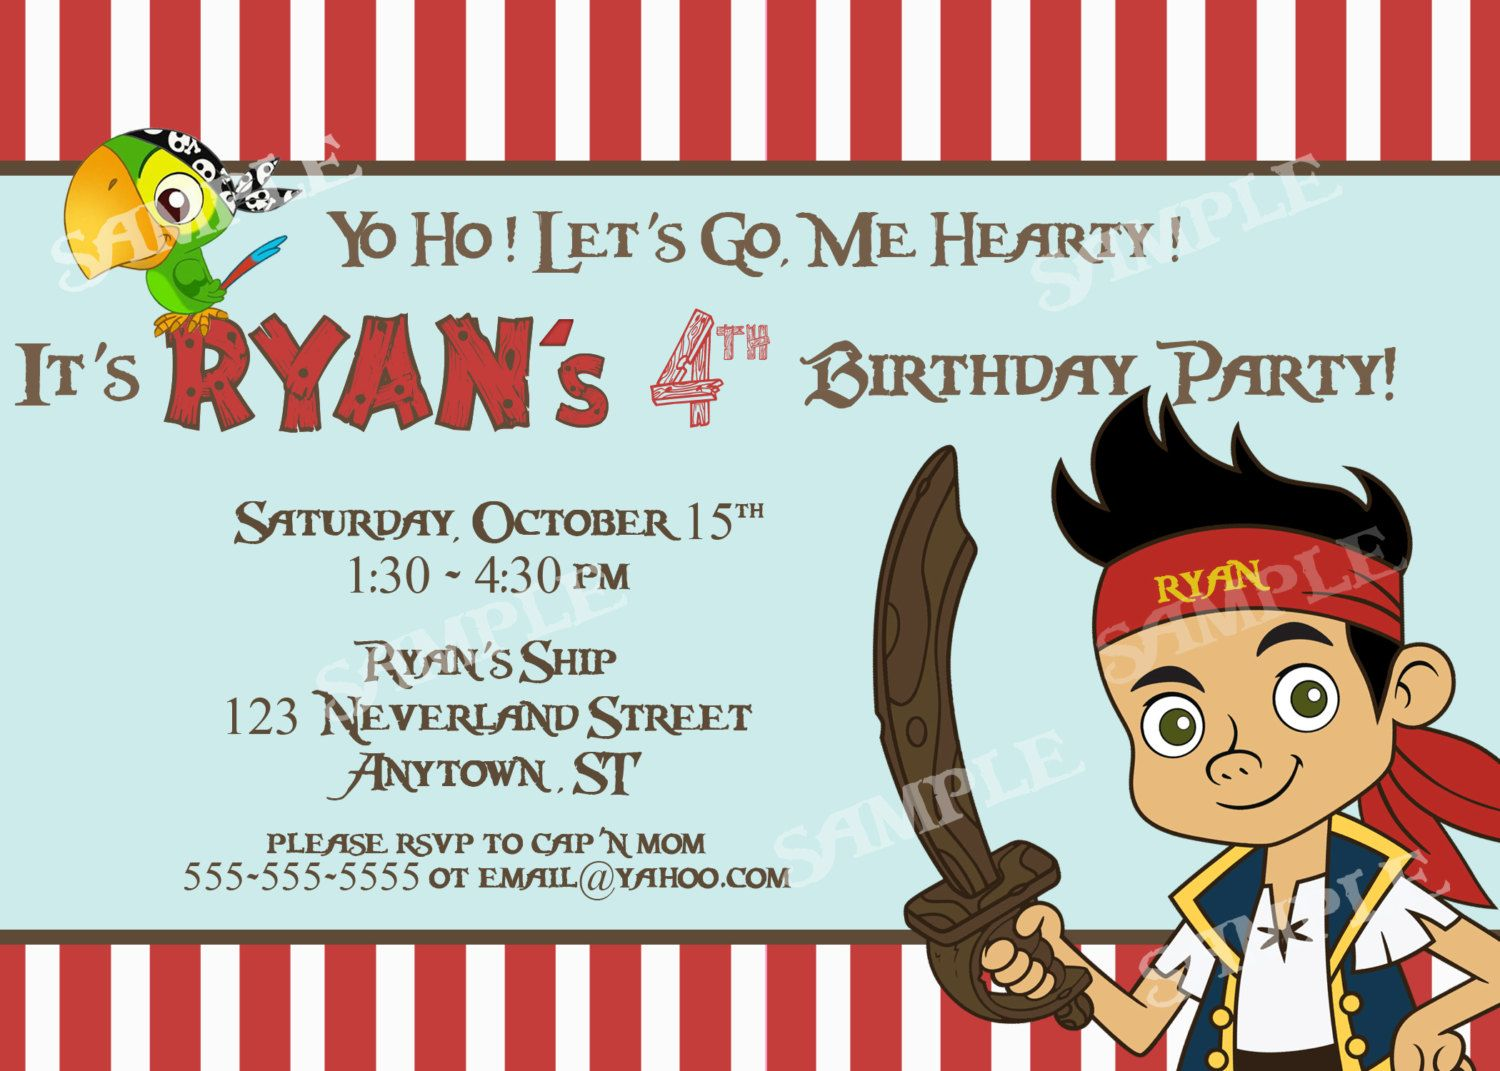 Free free template jake and the neverland pirates birthday free free template jake and the neverland pirates birthday invitation template filmwisefo